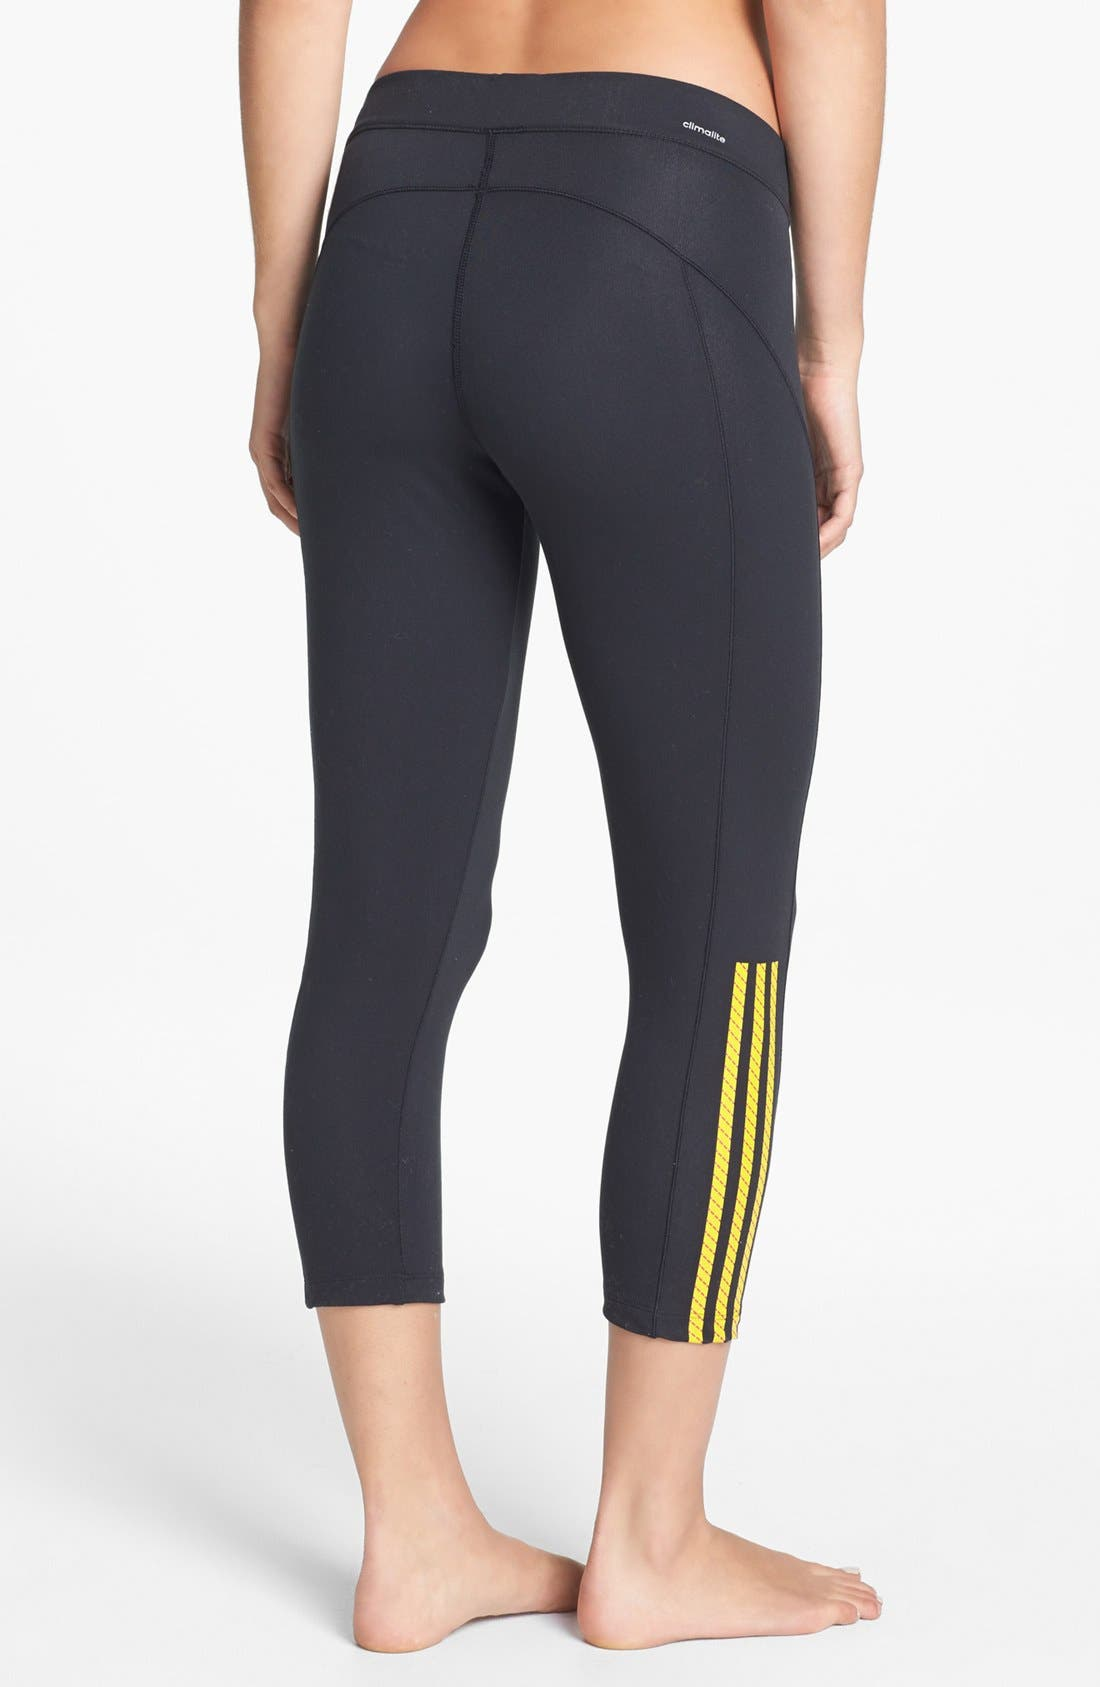 Alternate Image 2  - adidas 'Pursue' Capri Leggings